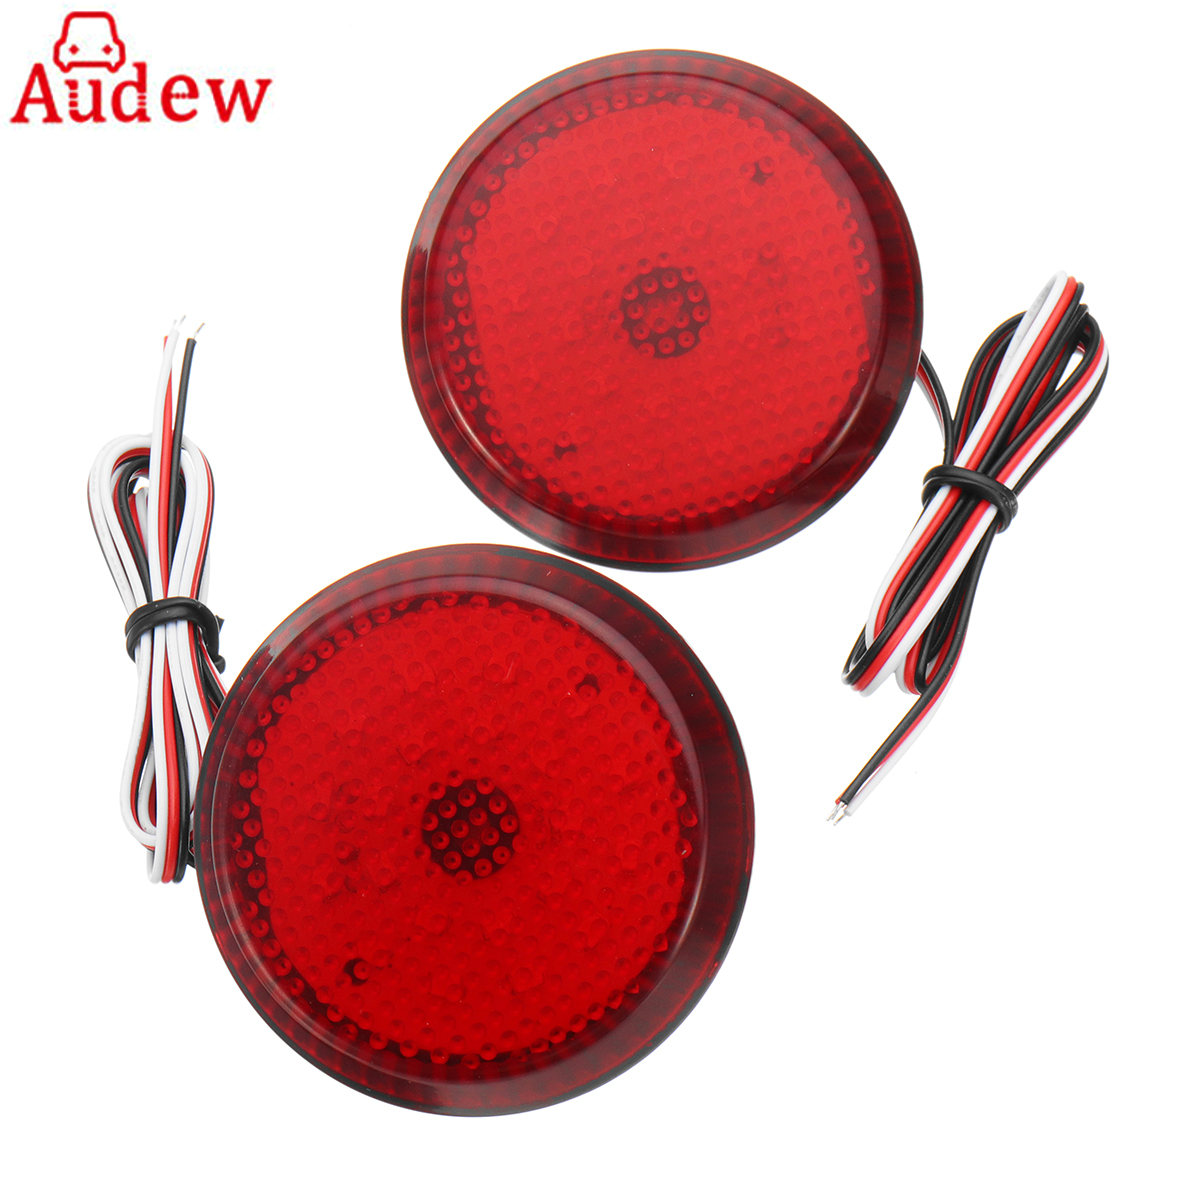 2Pcs Car Reflector Tail Brake Light Red LED Reverse Lamp Parking Warning Bumper Lamp For Nissan/Trail/Toyota/Corolla dongzhen fit for nissan bluebird sylphy almera led red rear bumper reflectors light night running brake warning lights lamp